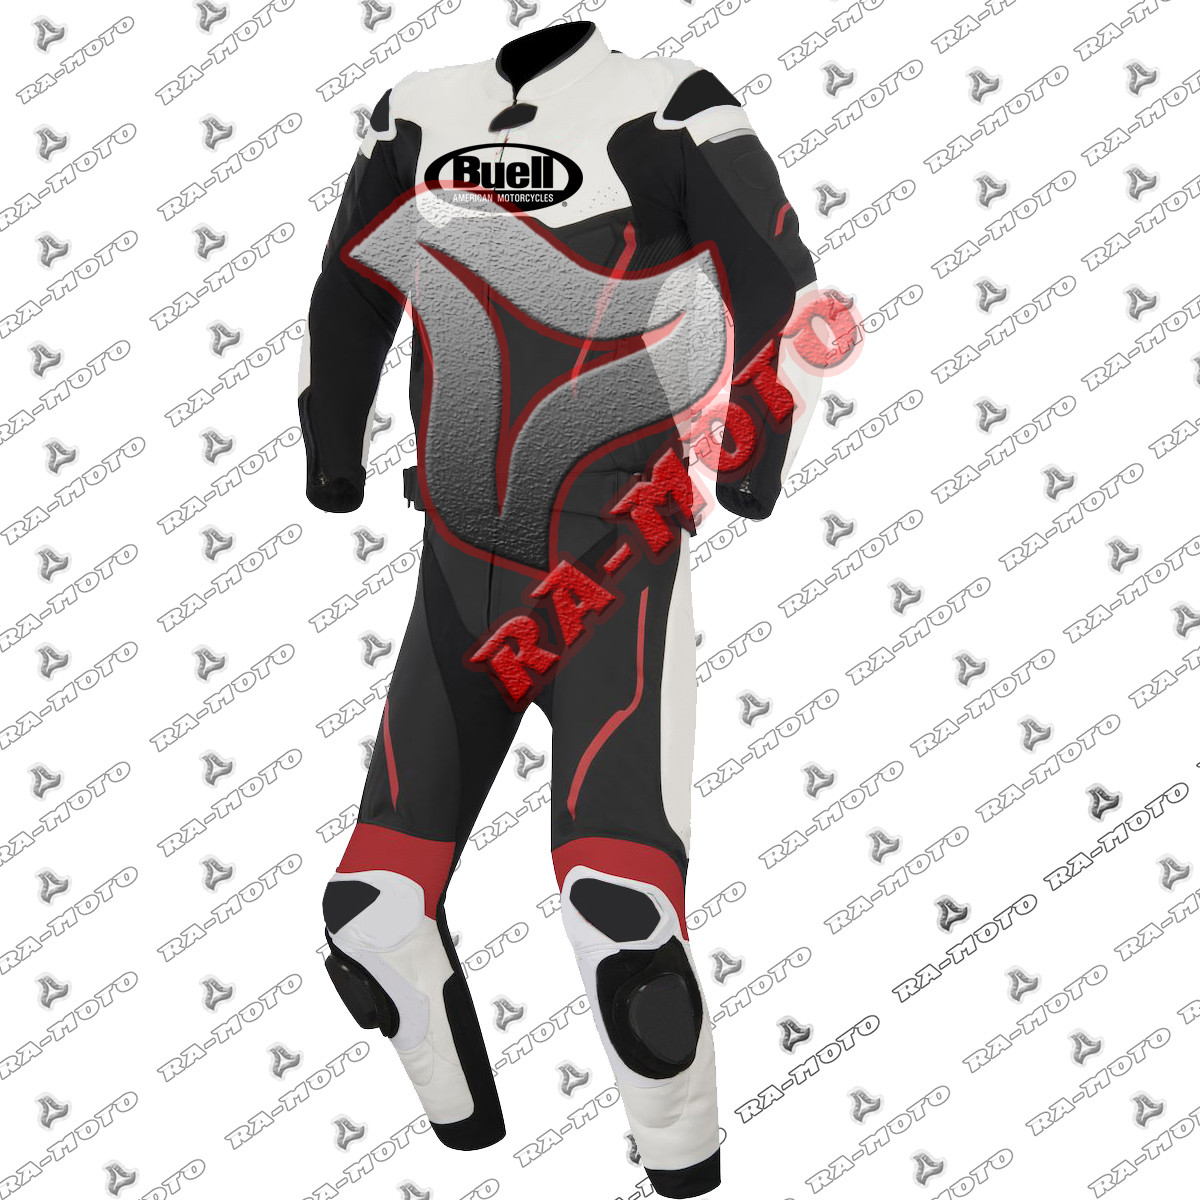 RA-15276Buell  Motorbike leather suit